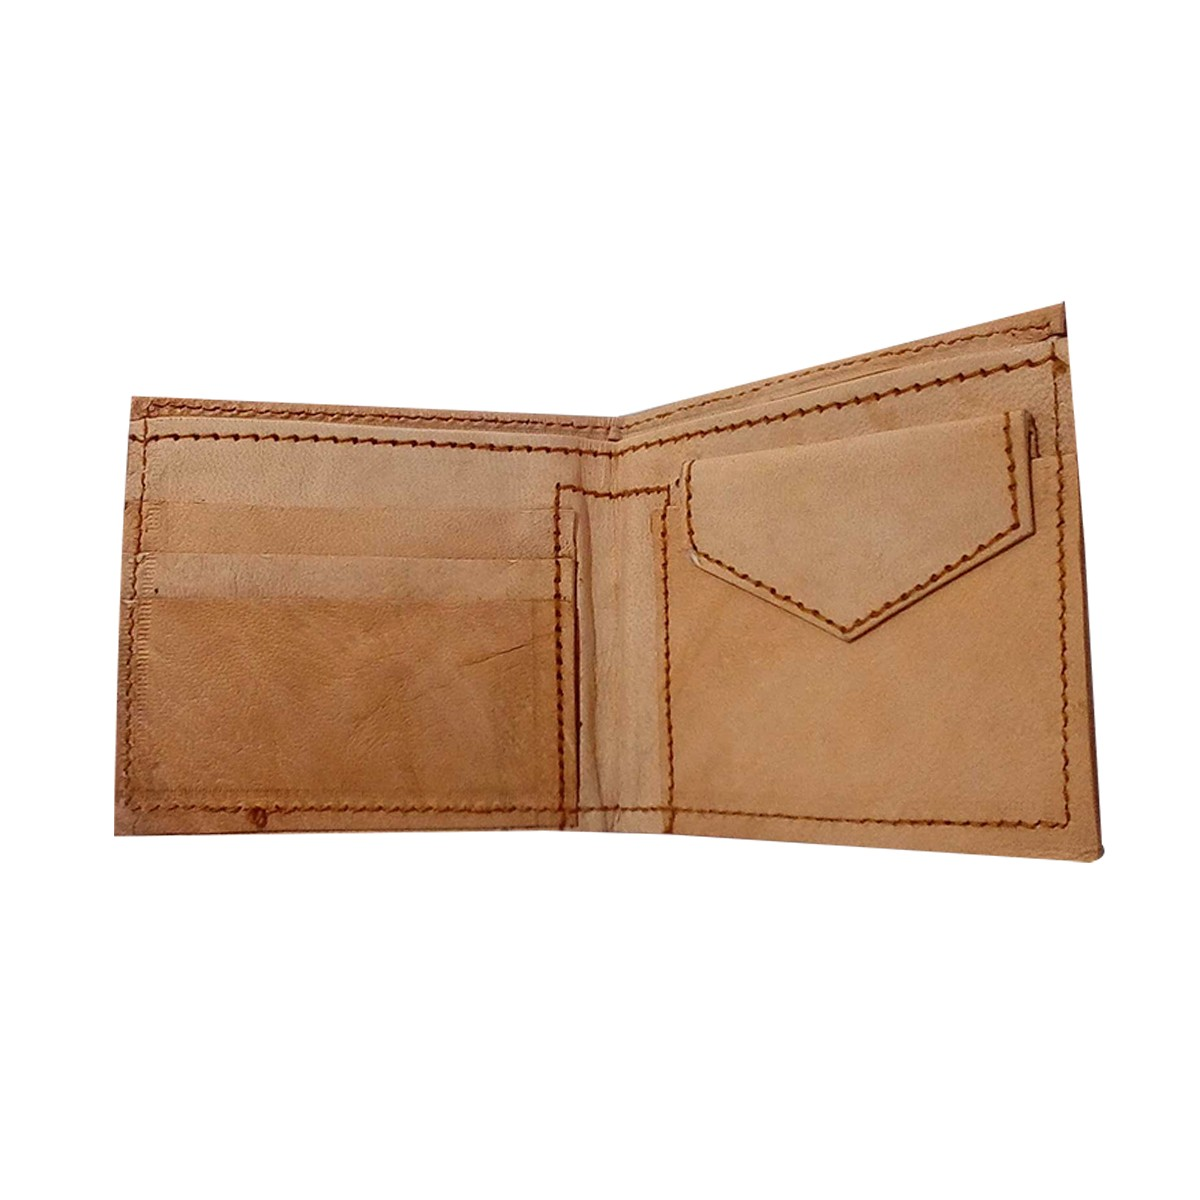 Handmade Brown Genuine Leather Vintage unisex Wallet by Rural Artisans